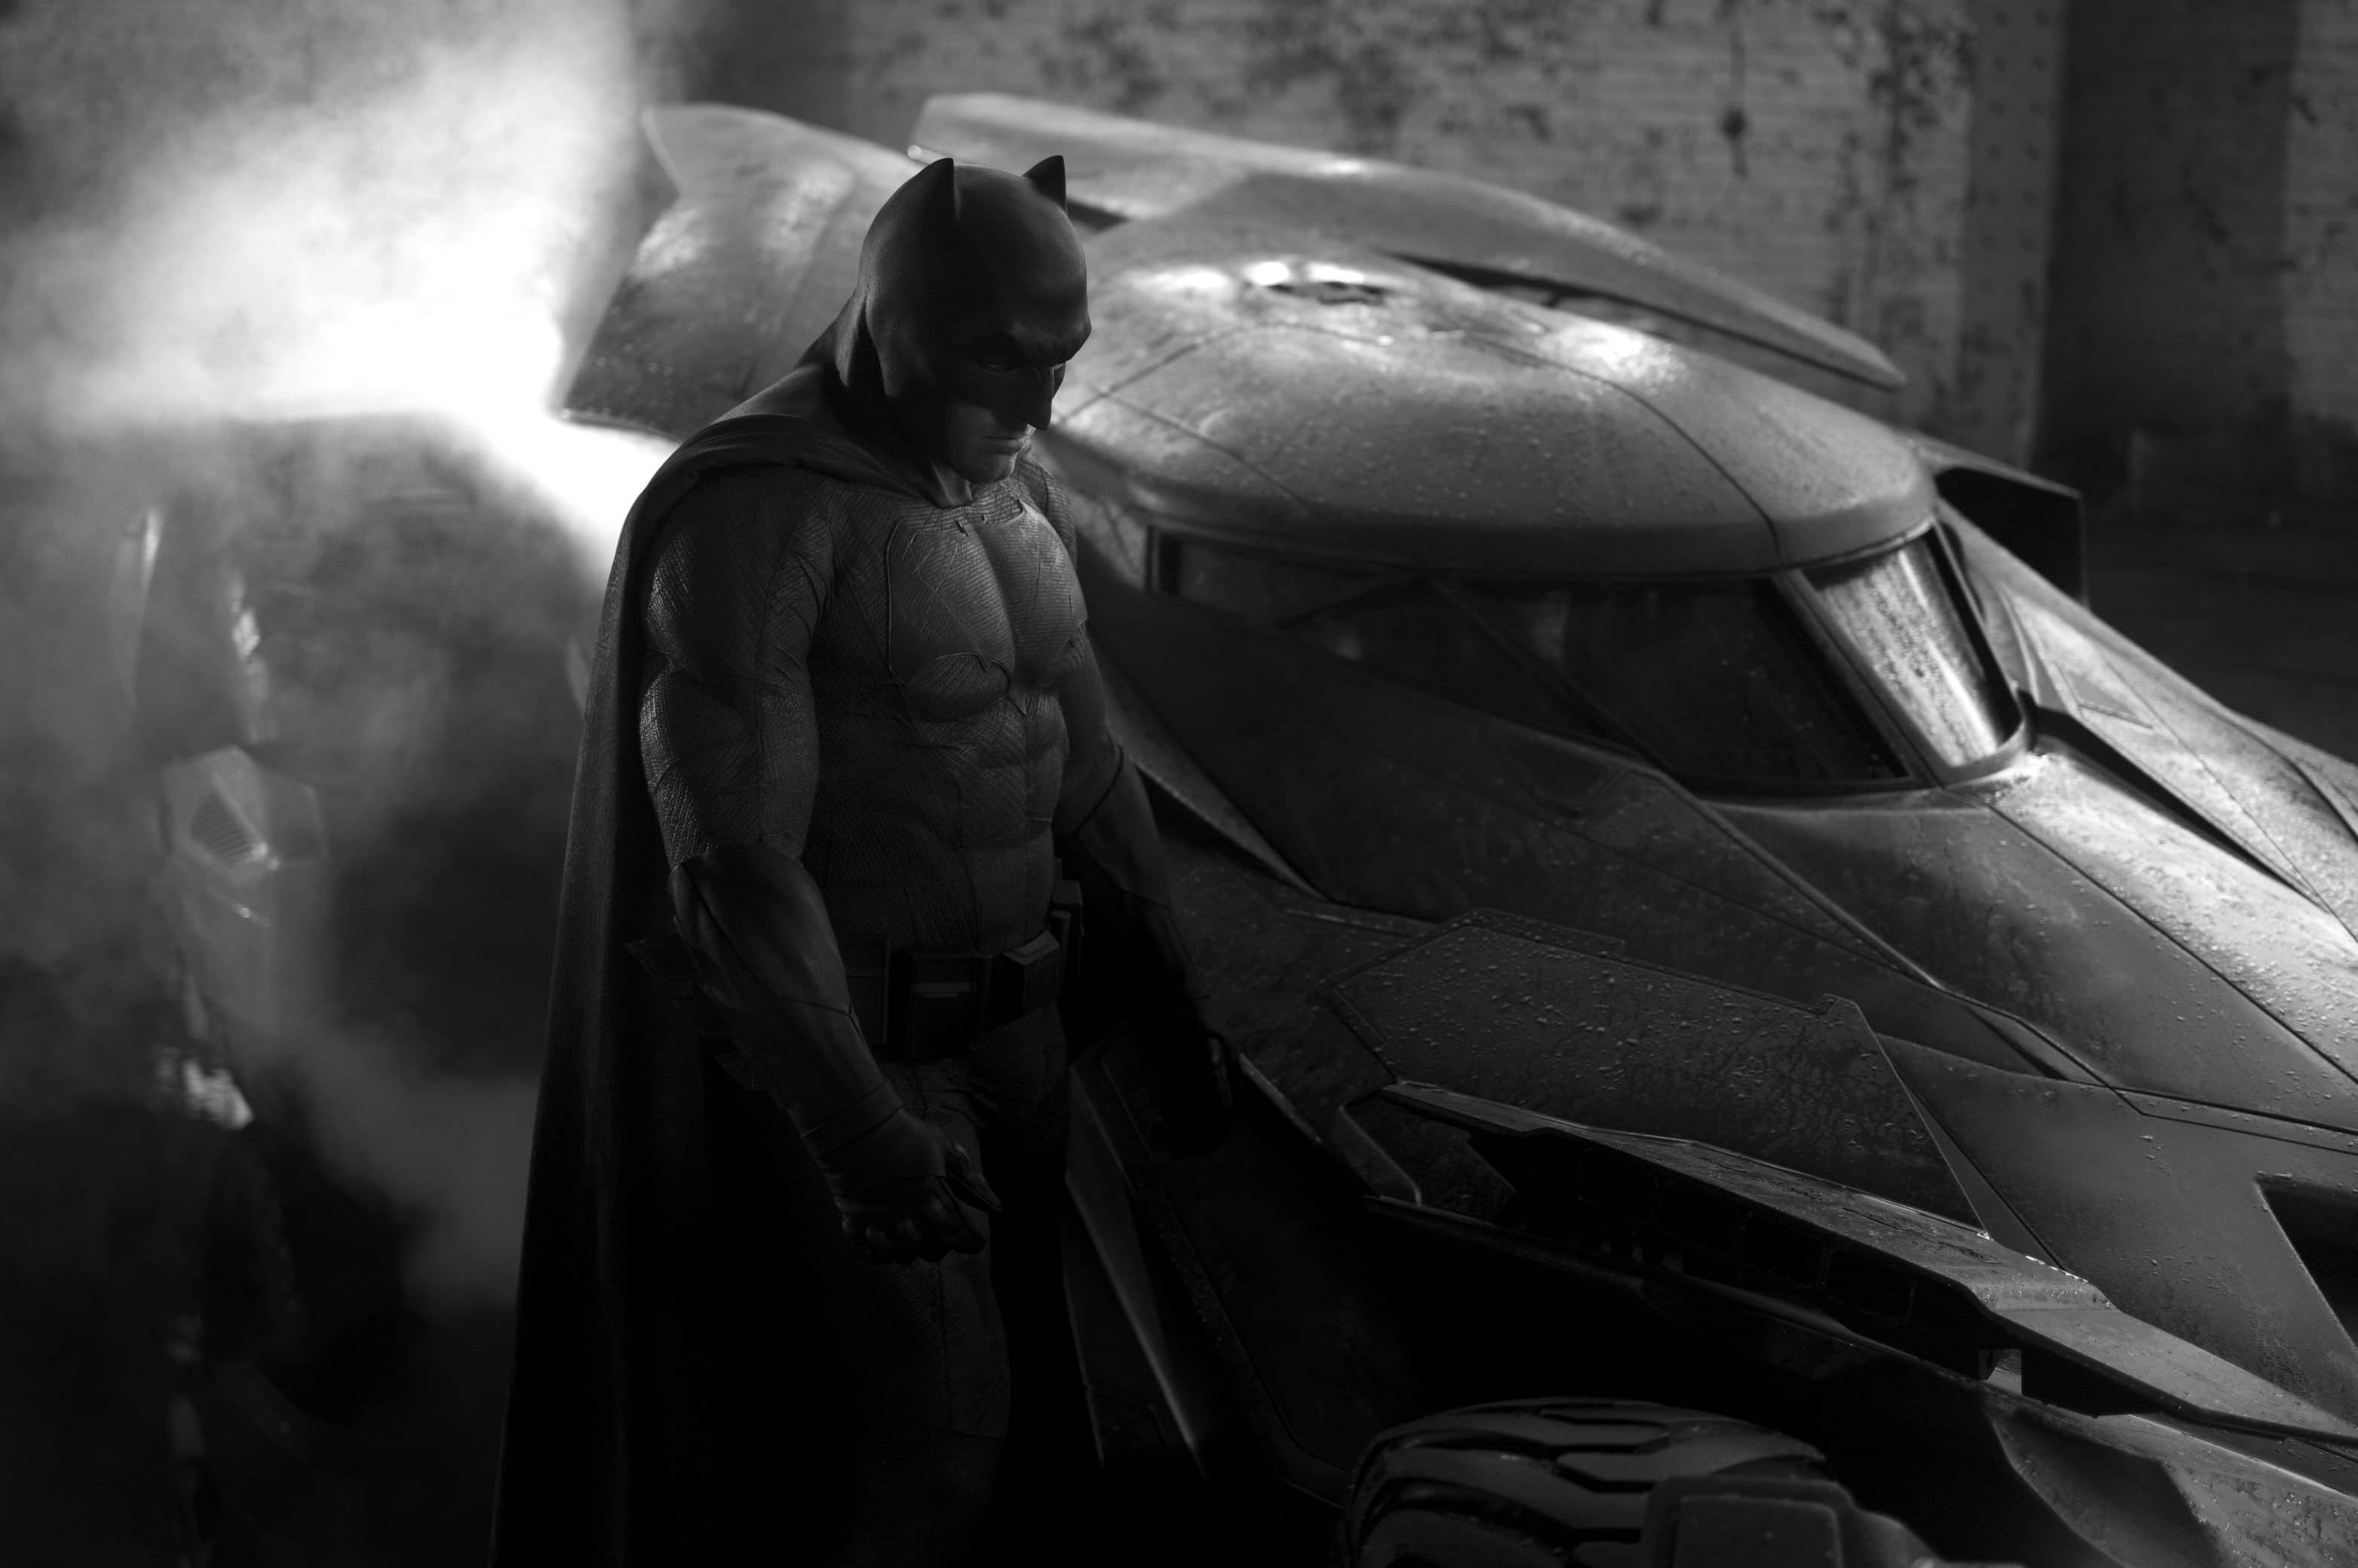 Batman Vs Superman (2016) - Movie Picture 02